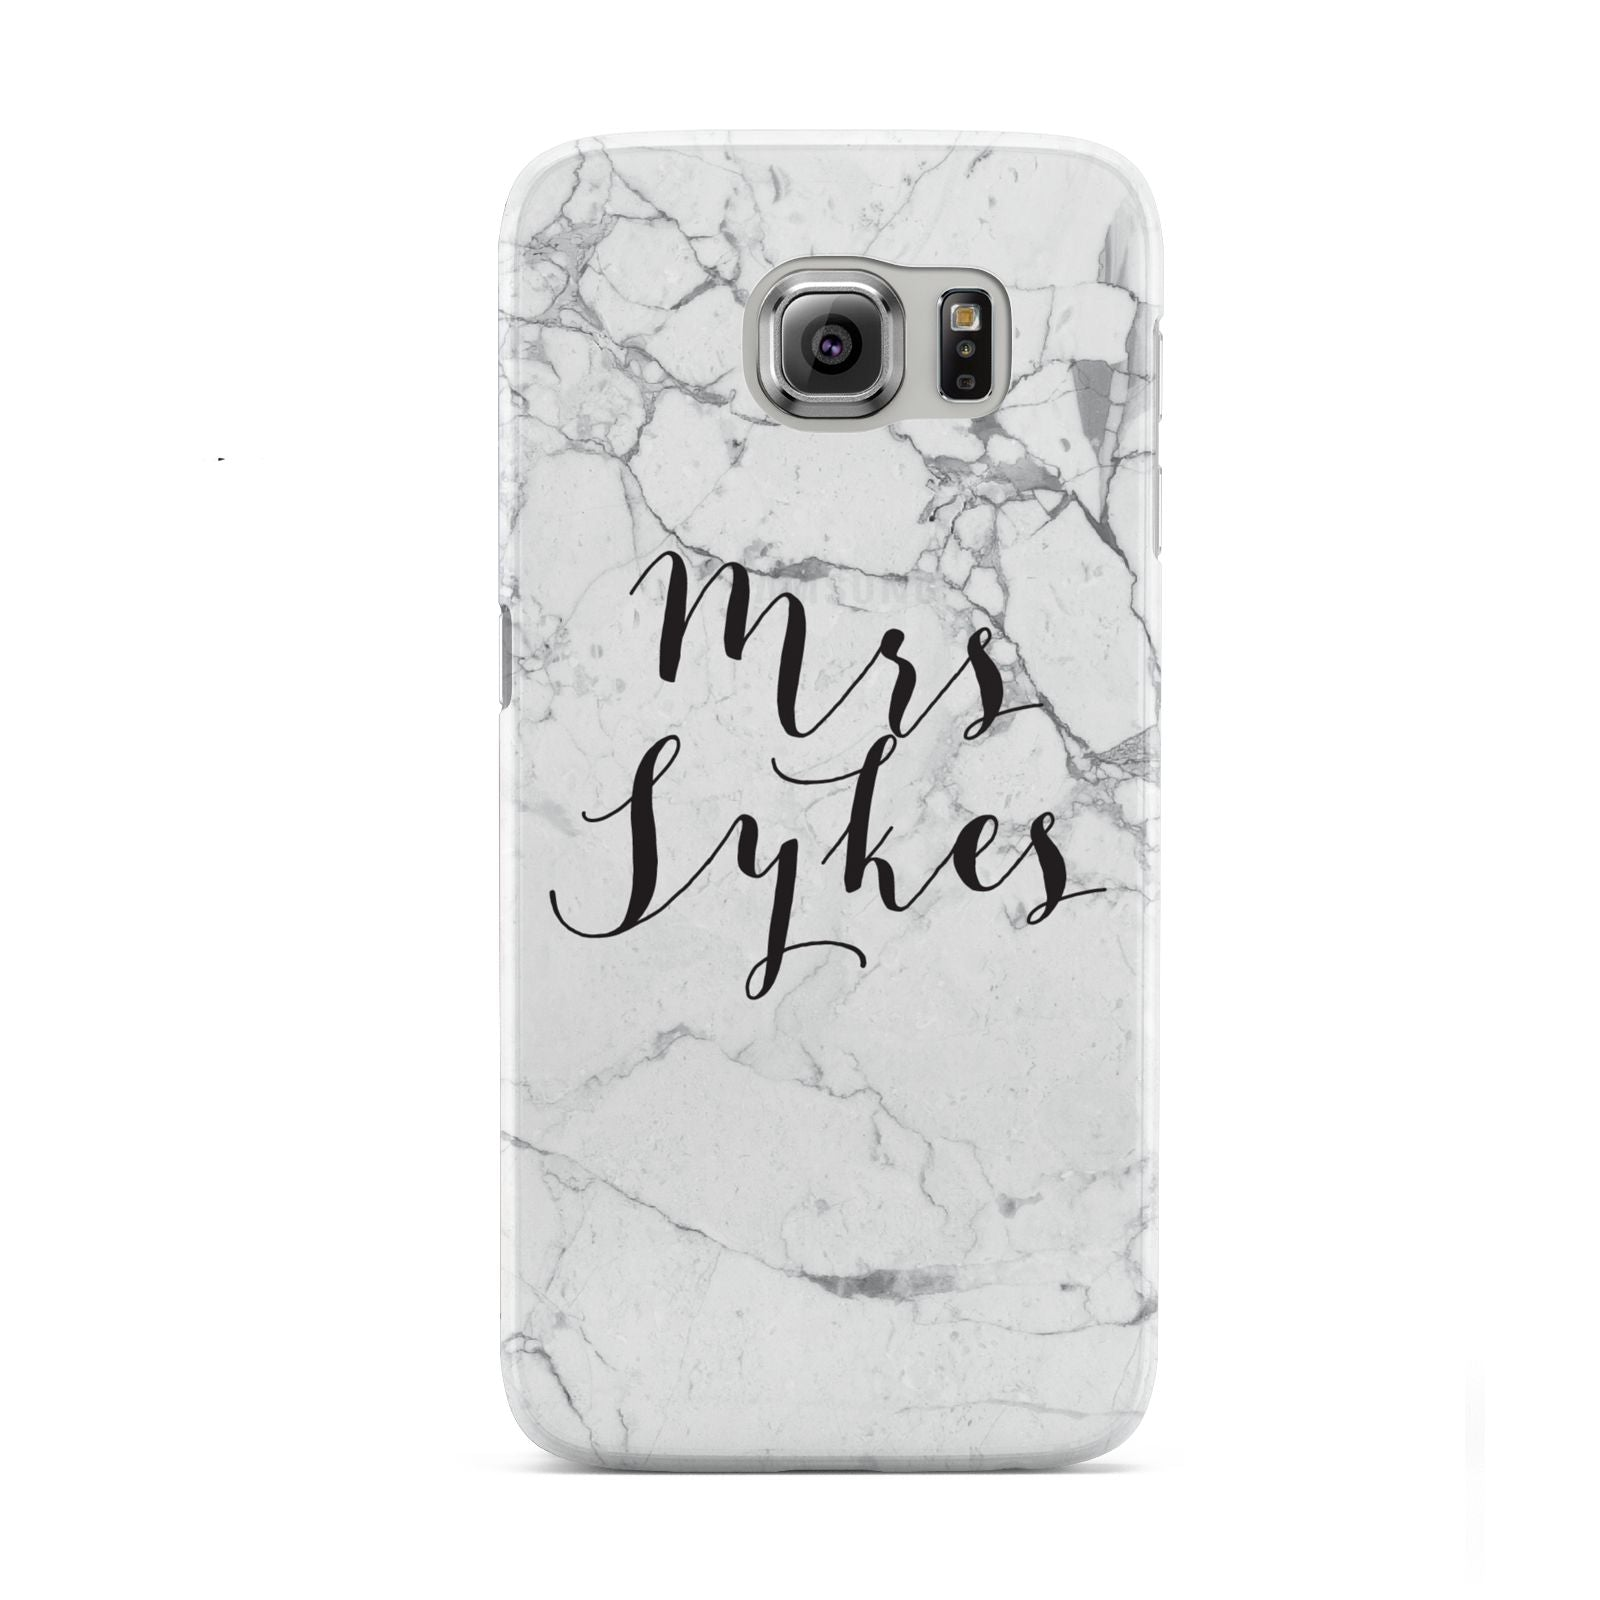 Surname Personalised Marble Samsung Galaxy S6 Case